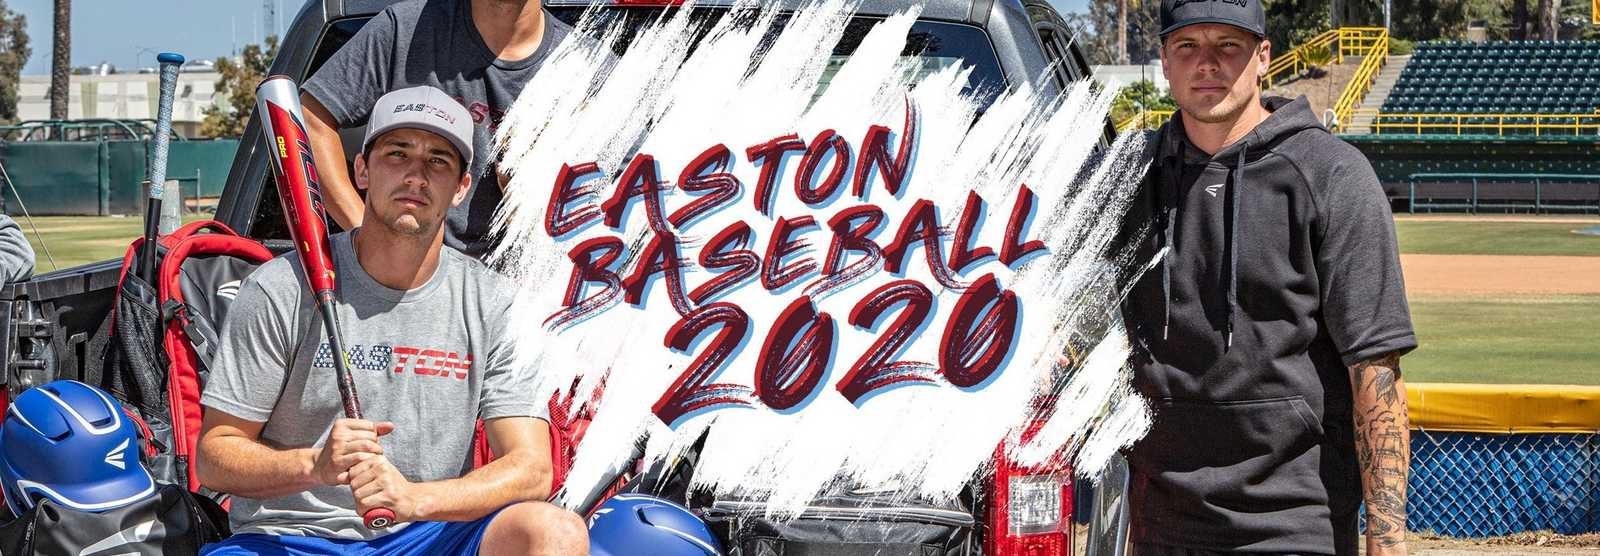 easton-baseball-bats-2020